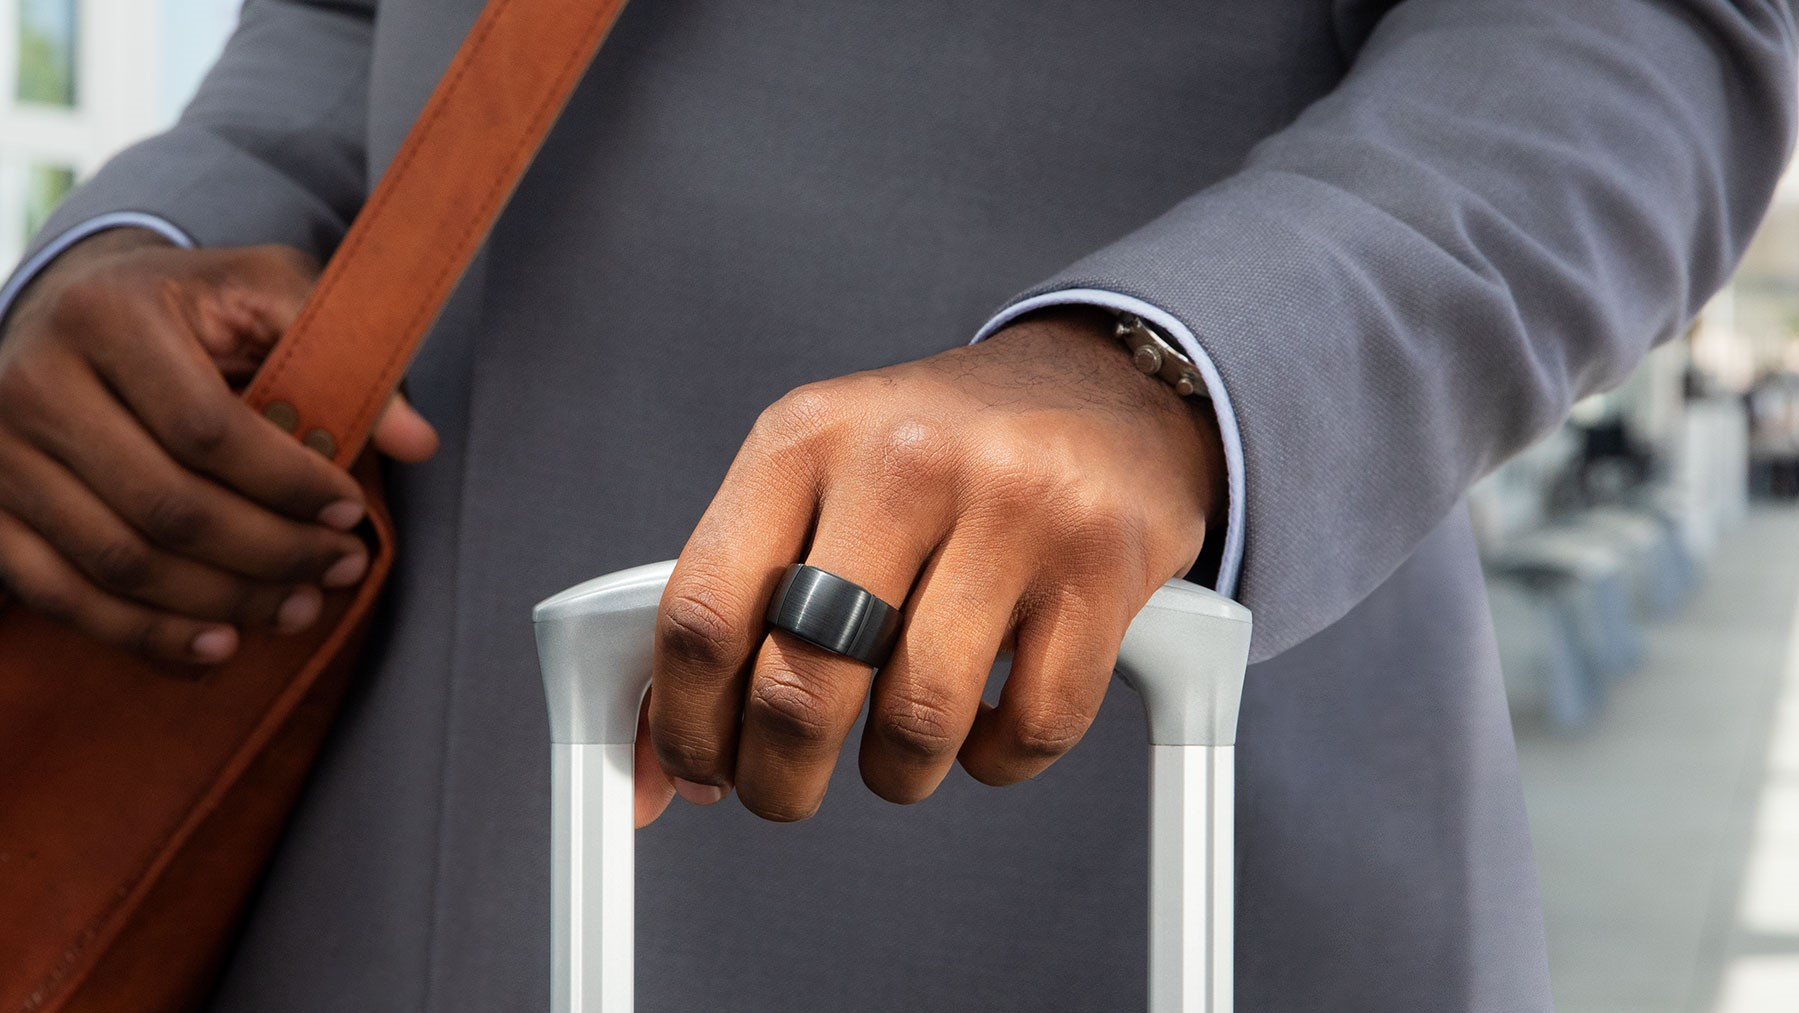 The Echo Loop smart ring (pictured) was announced at last year's Amazon event.